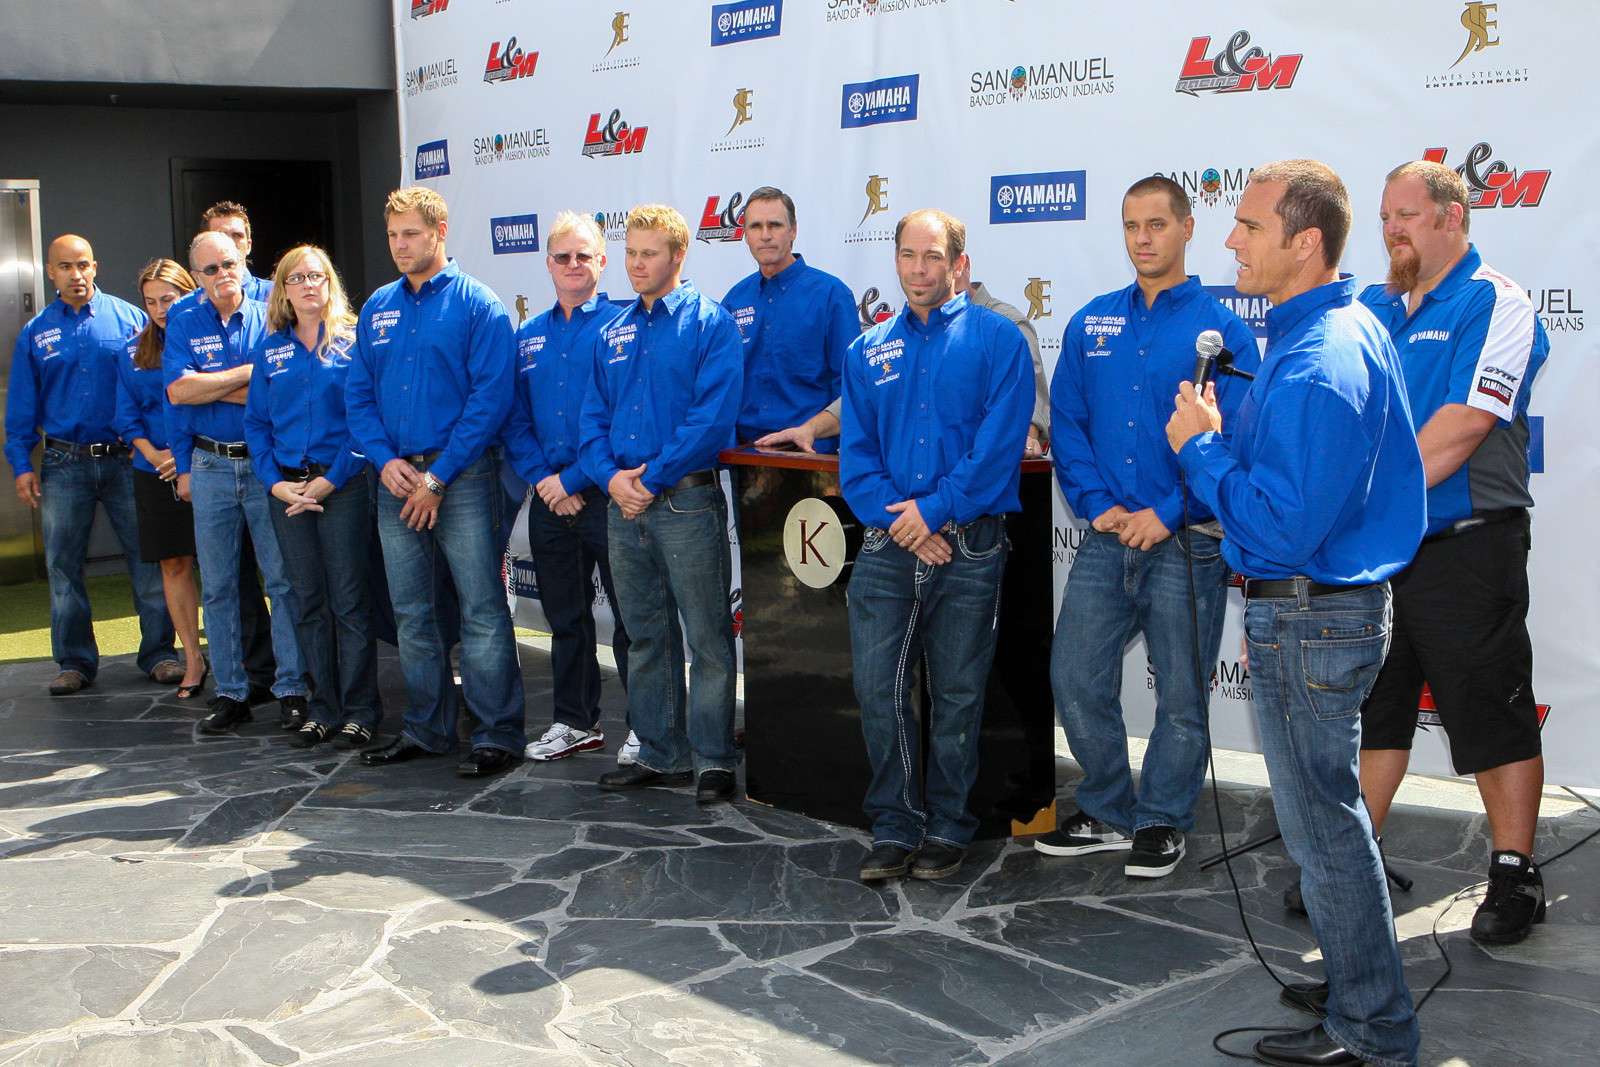 At the L&M team intro (he's third from right) and James Stewart and Chad Reed.